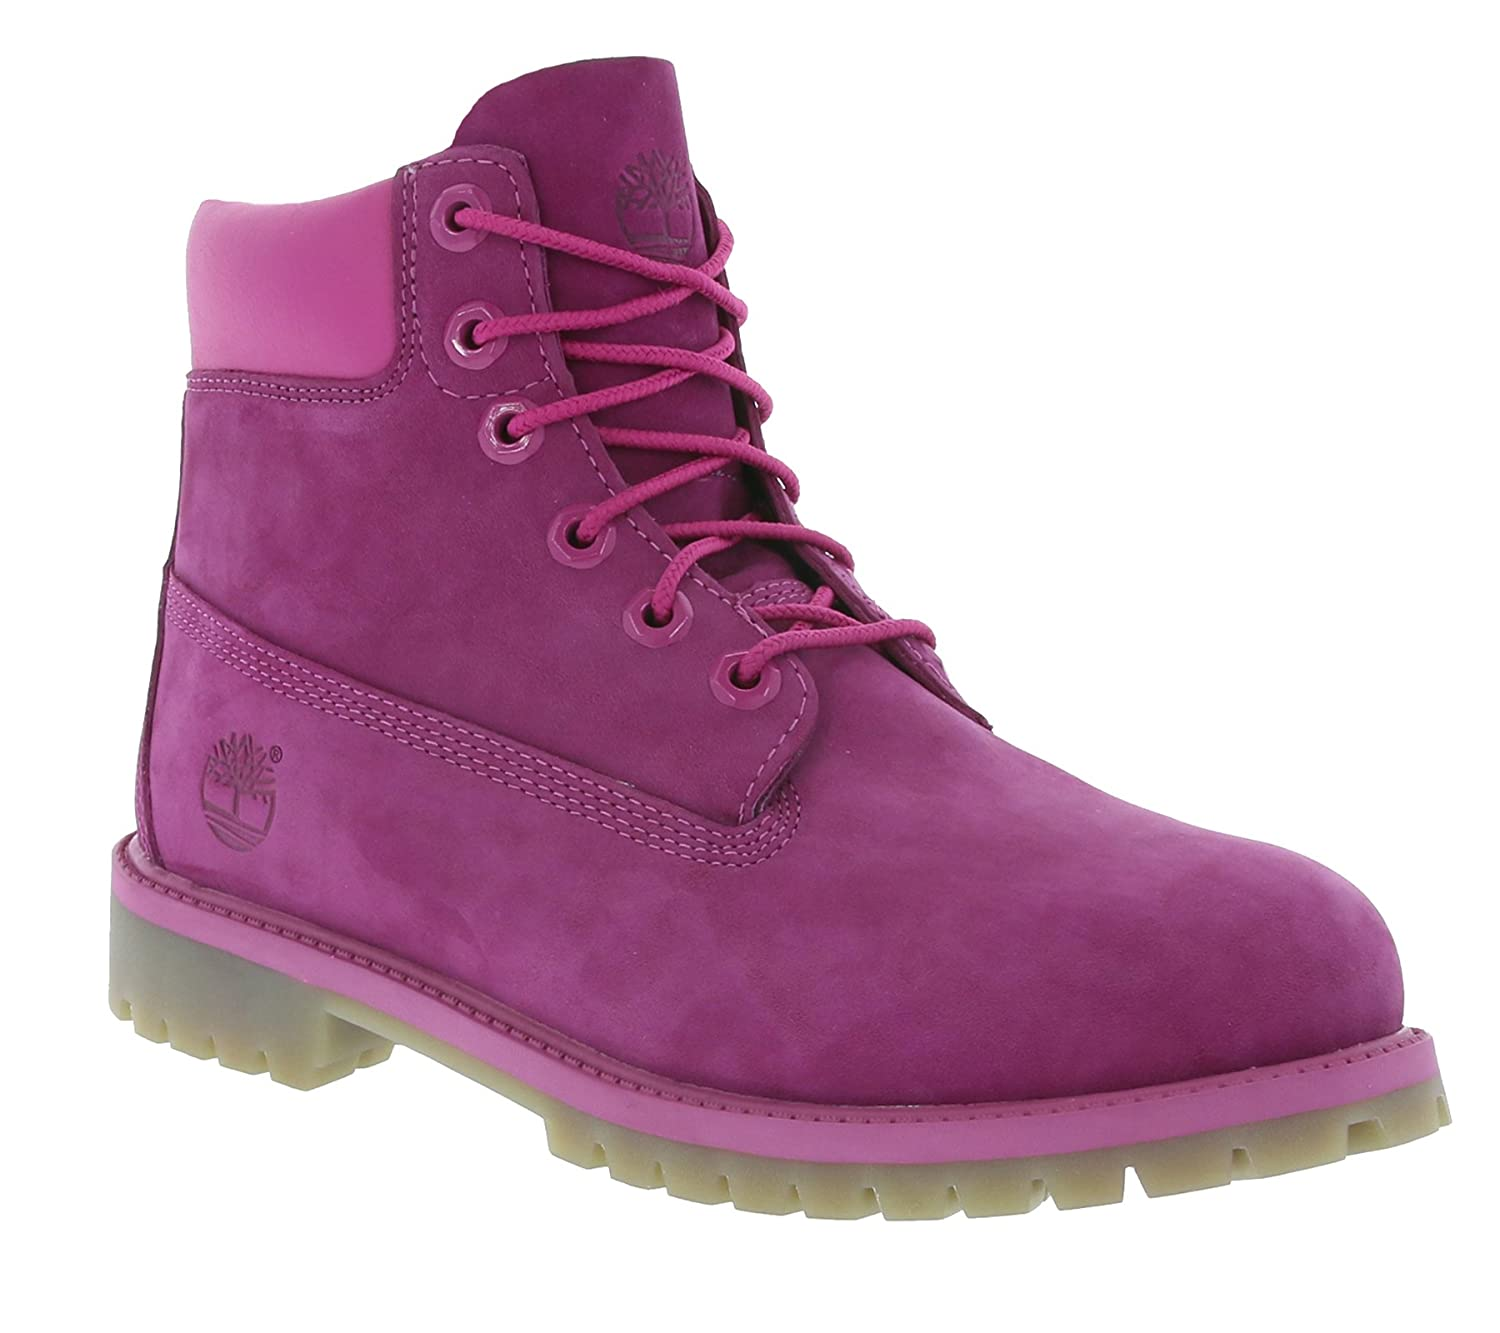 Timberland - - Premium Boot Pink B000EDGPX4 - Mixte Junior Pink 81c06d7 - therethere.space